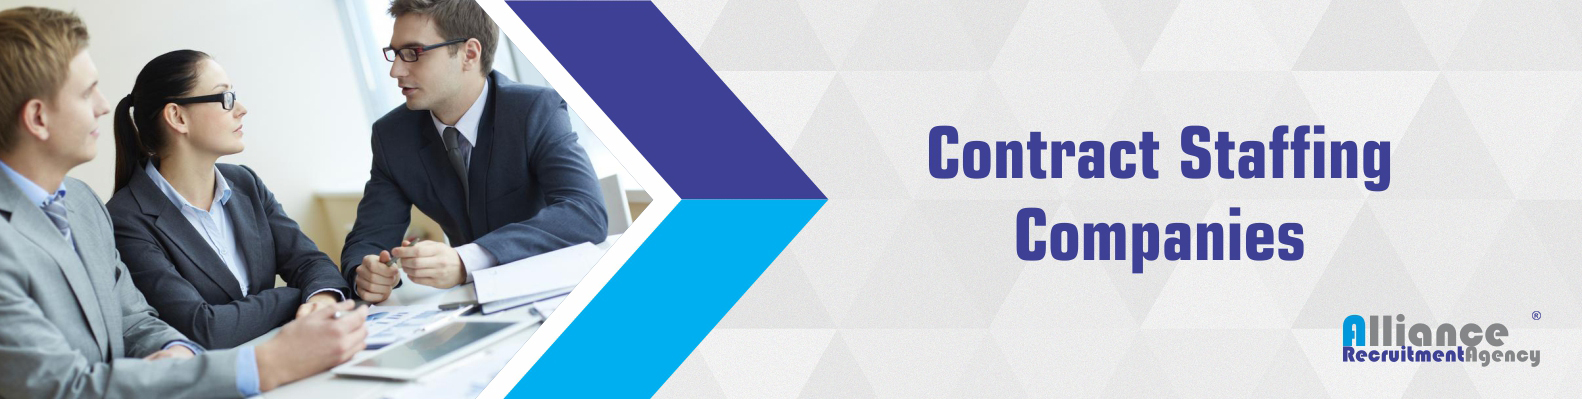 Contract Staffing Companies - Contract Staffing Companies In India